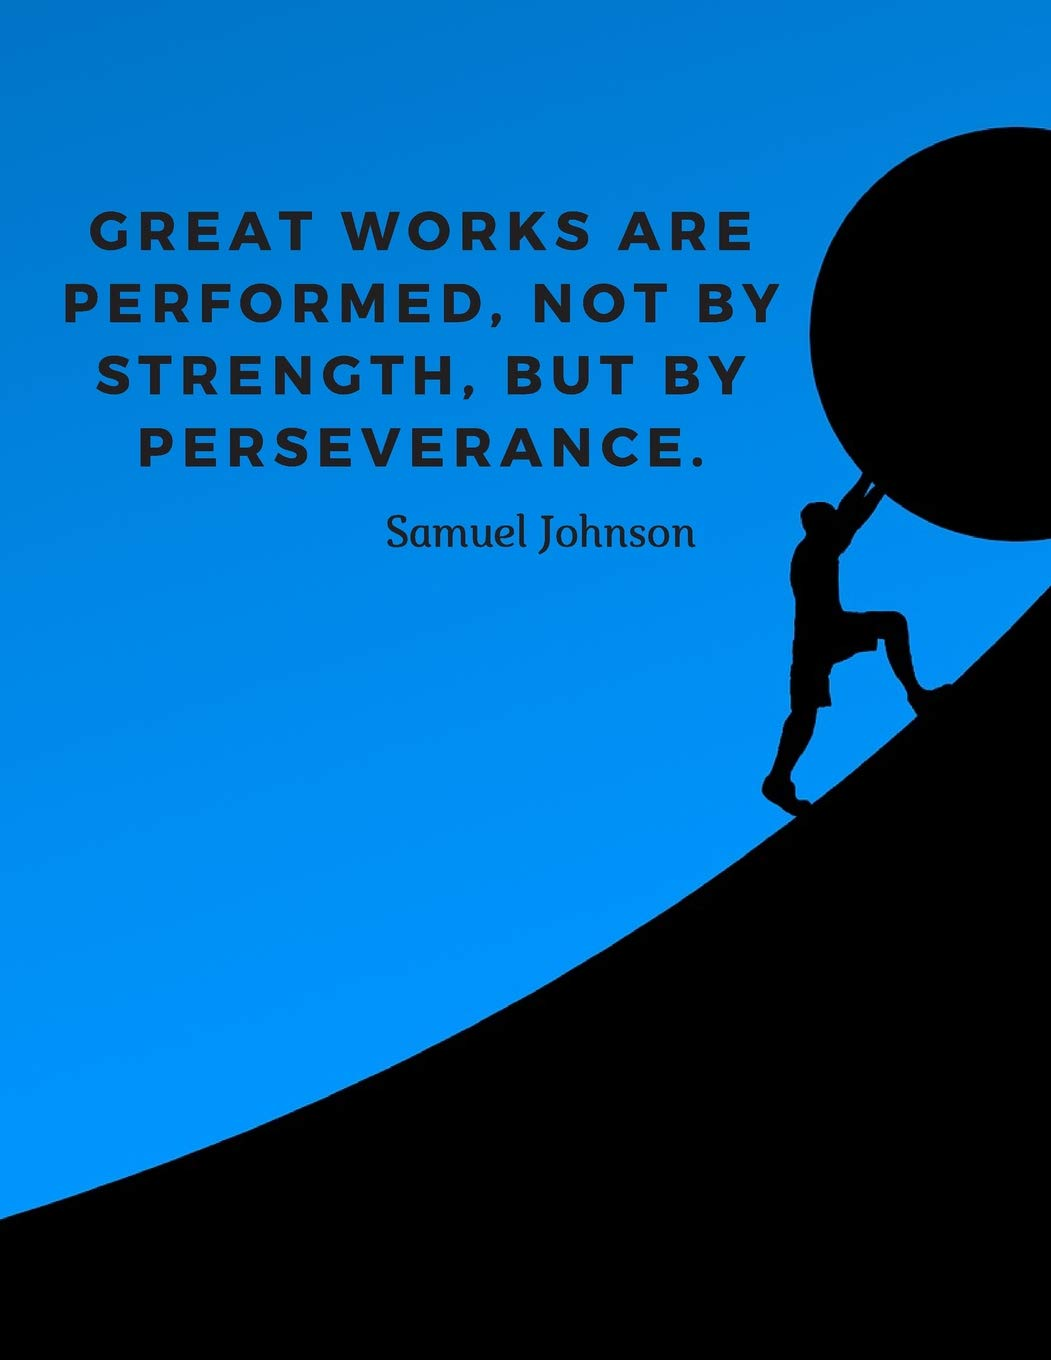 [Image] Great works are performed not by strength but by perseverance.